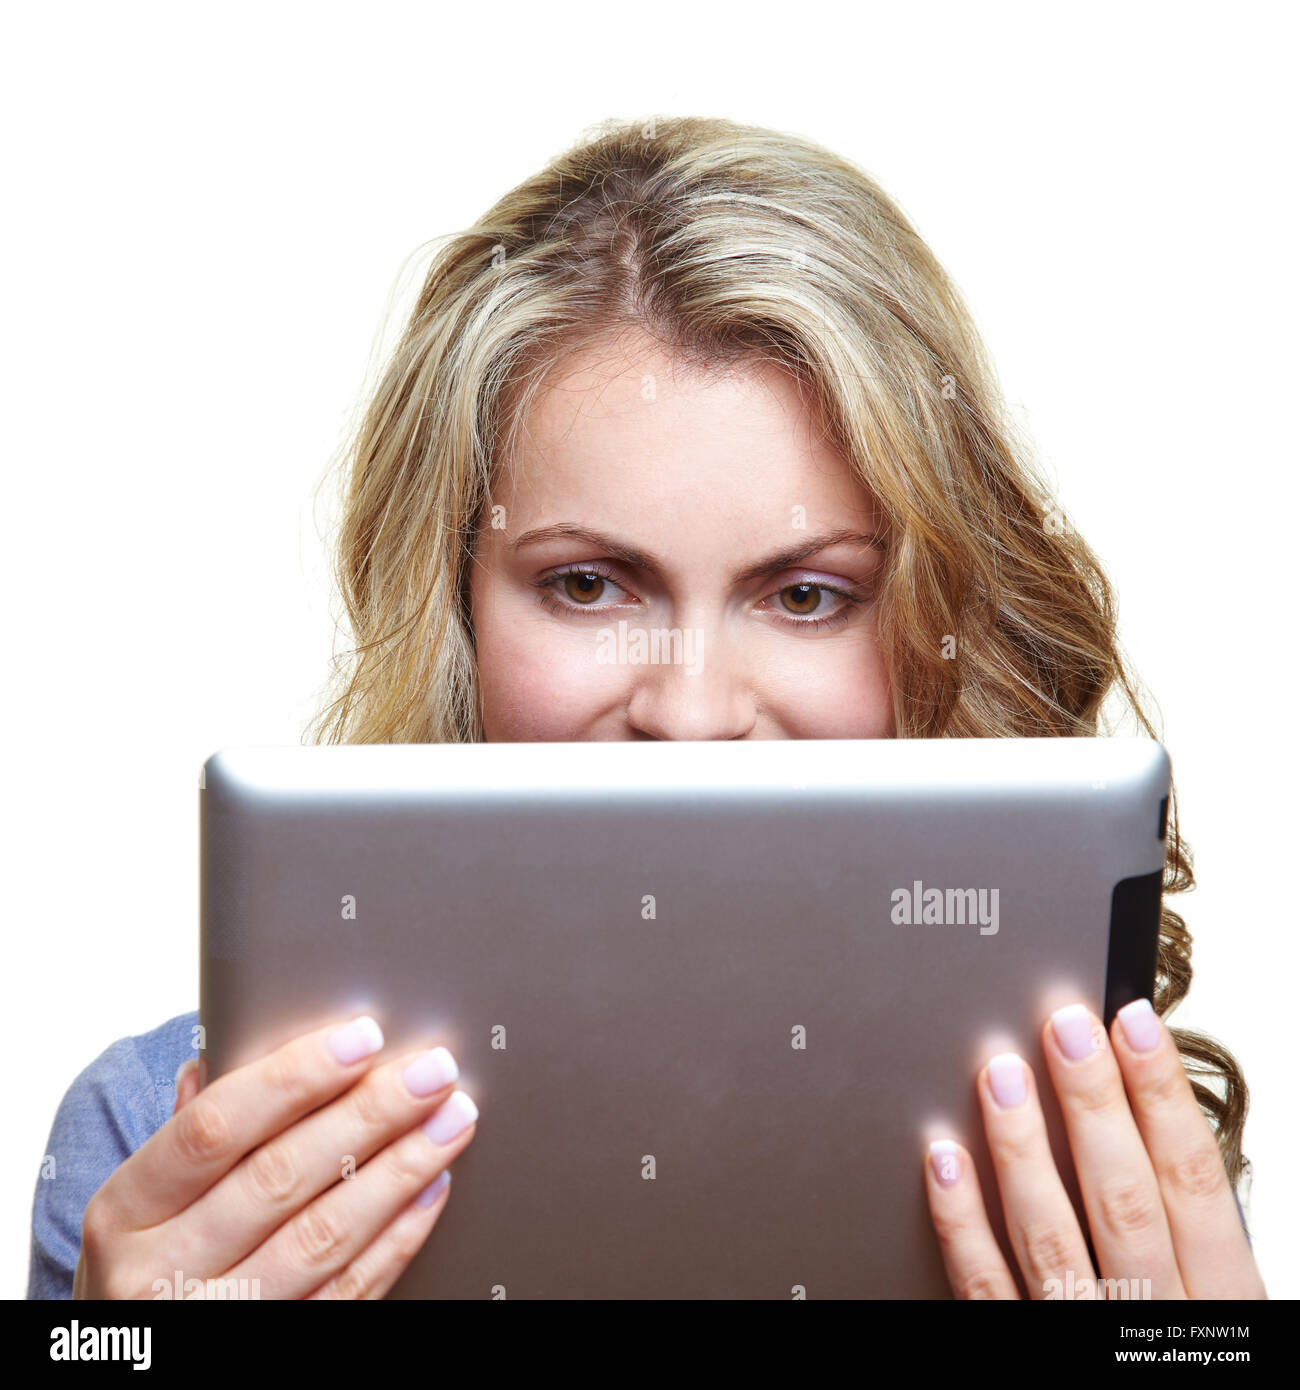 Blonde woman reading a digital book with an ebook reader - Stock Image